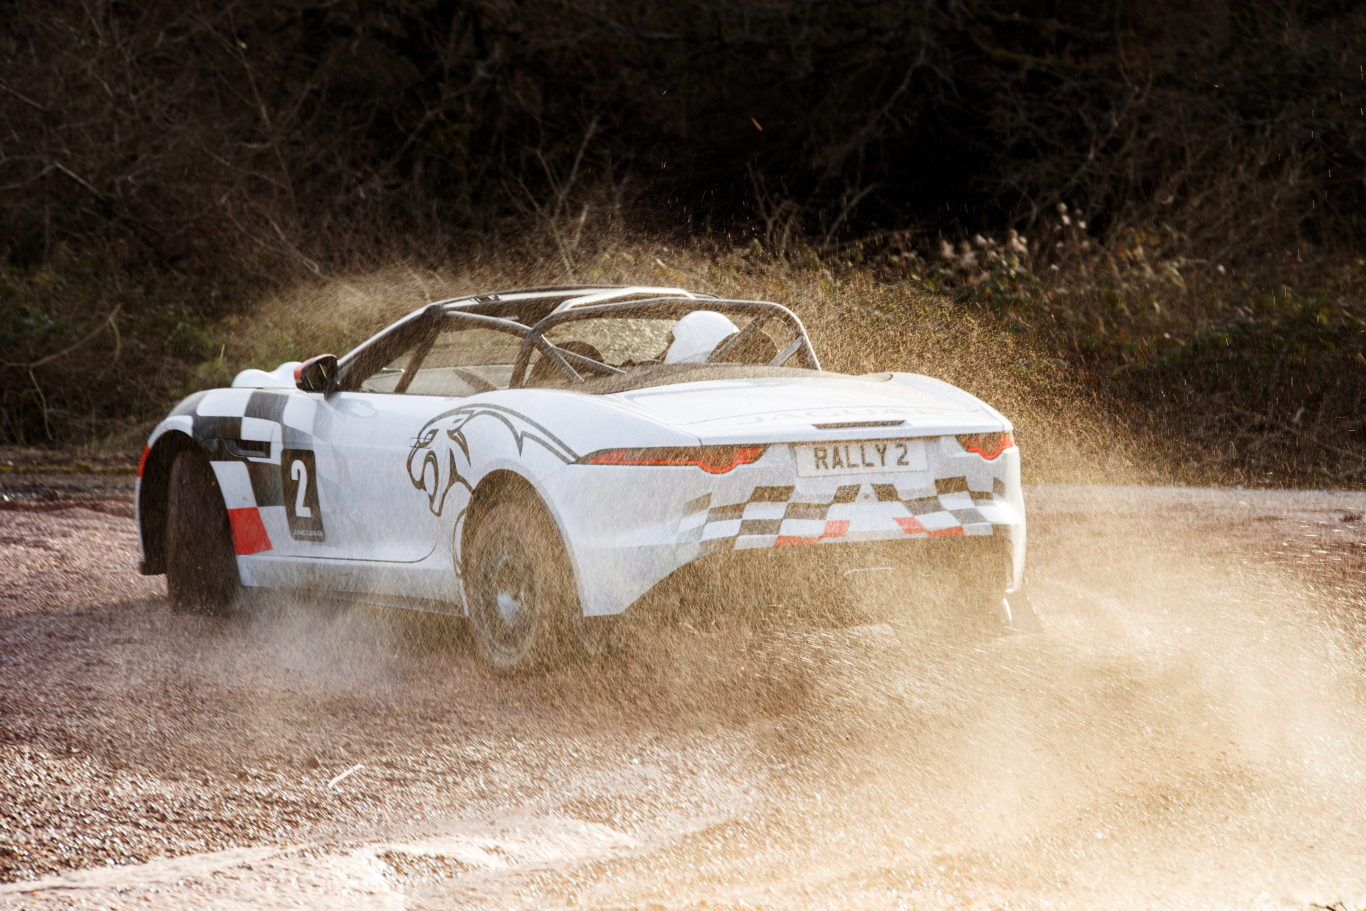 The F-Type rally car is exciting in the bends